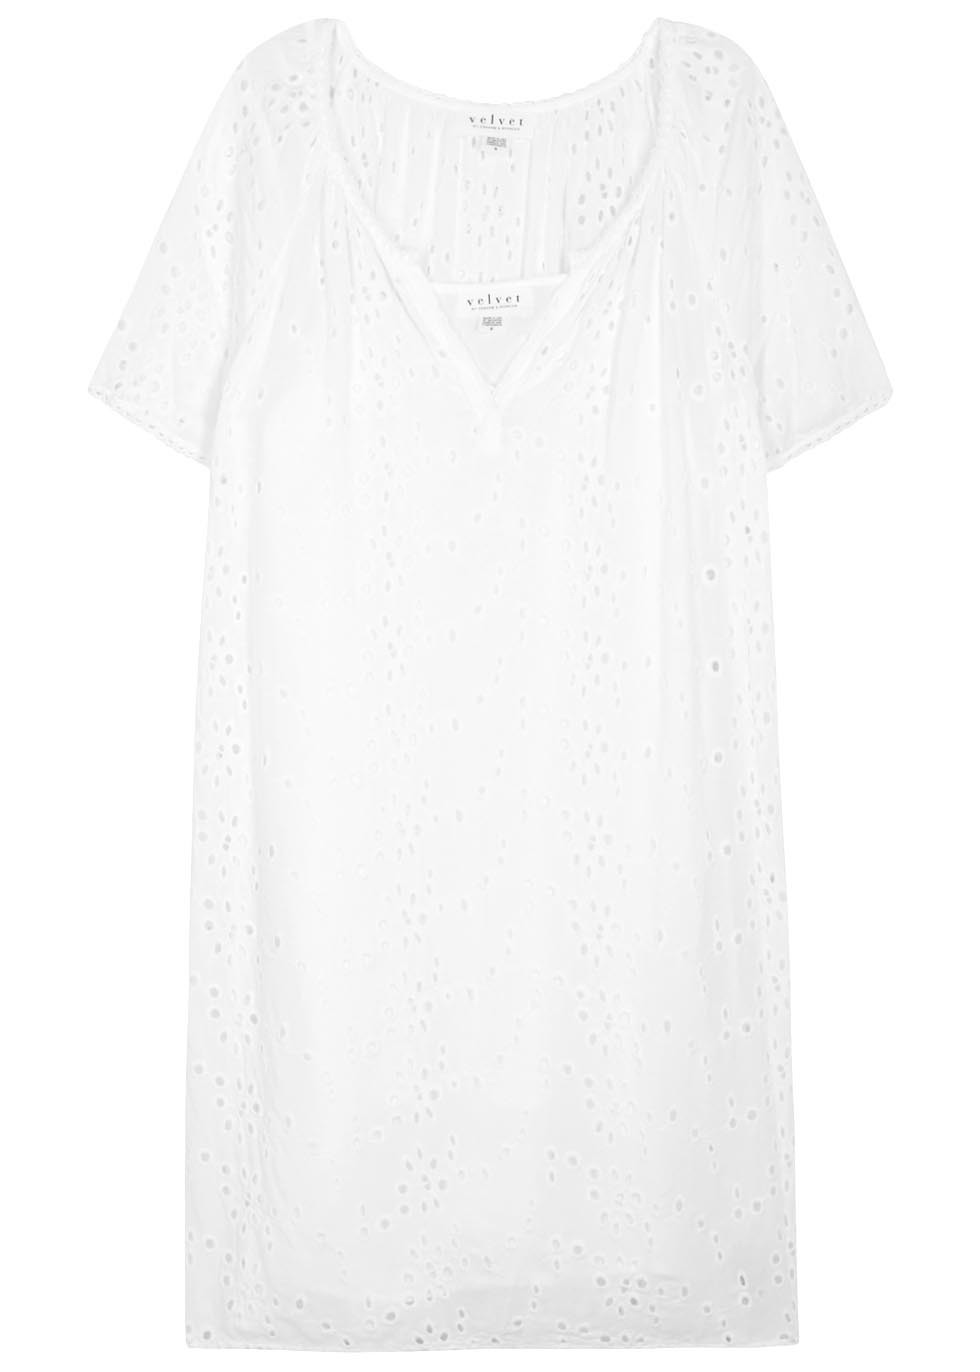 Jefferson White Broderie Anglaise Dress - style: shift; neckline: v-neck; pattern: plain; predominant colour: white; occasions: casual; length: just above the knee; fit: body skimming; fibres: viscose/rayon - 100%; sleeve length: short sleeve; sleeve style: standard; pattern type: fabric; texture group: broiderie anglais; season: s/s 2016; wardrobe: highlight